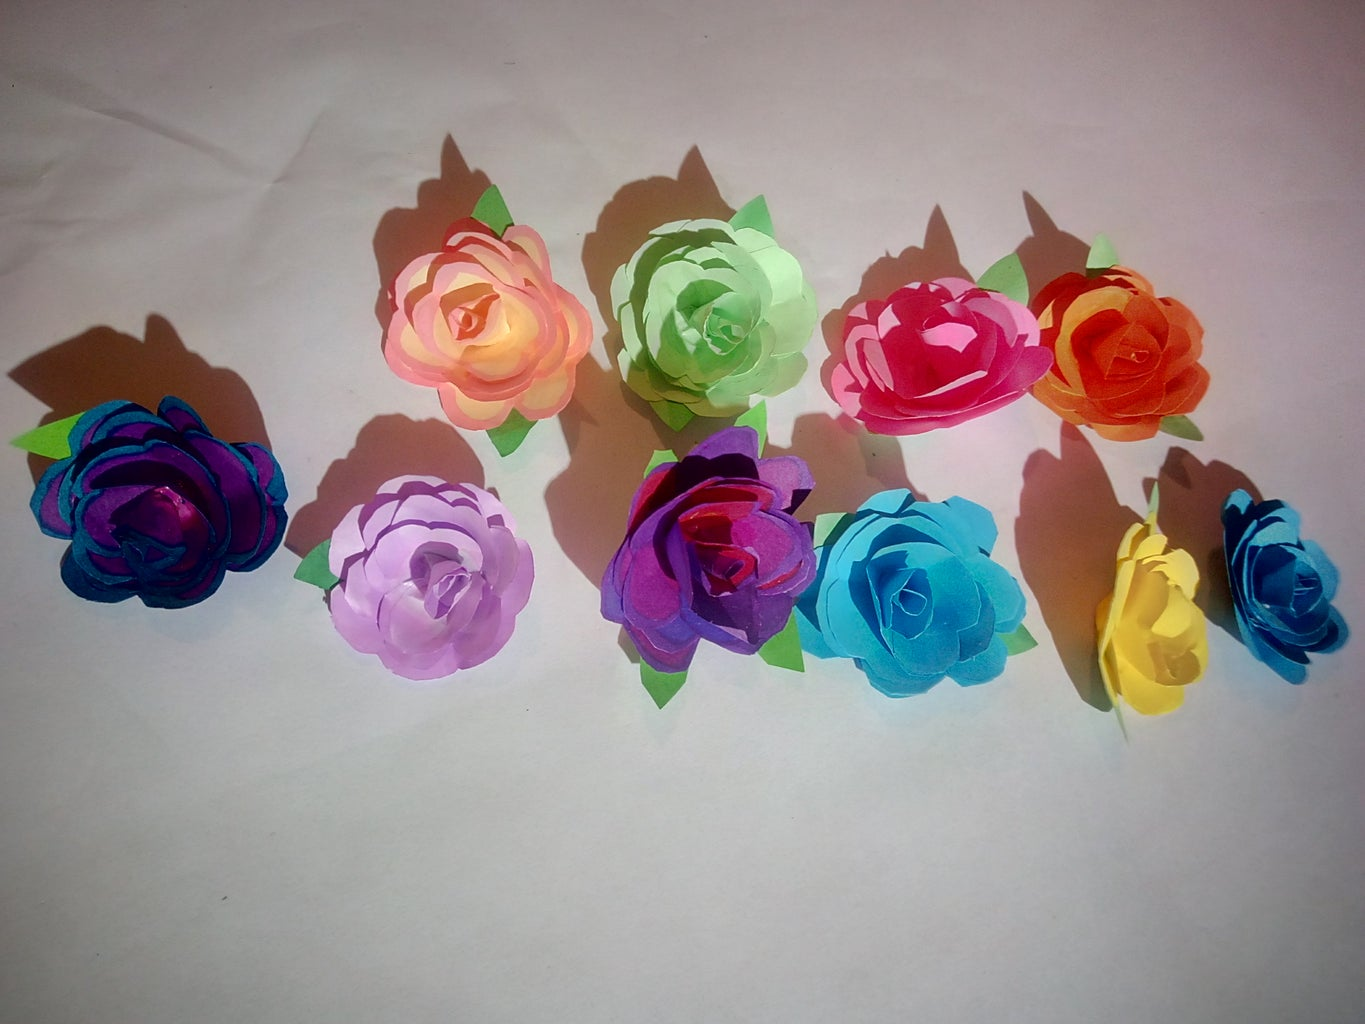 Making the Flowers